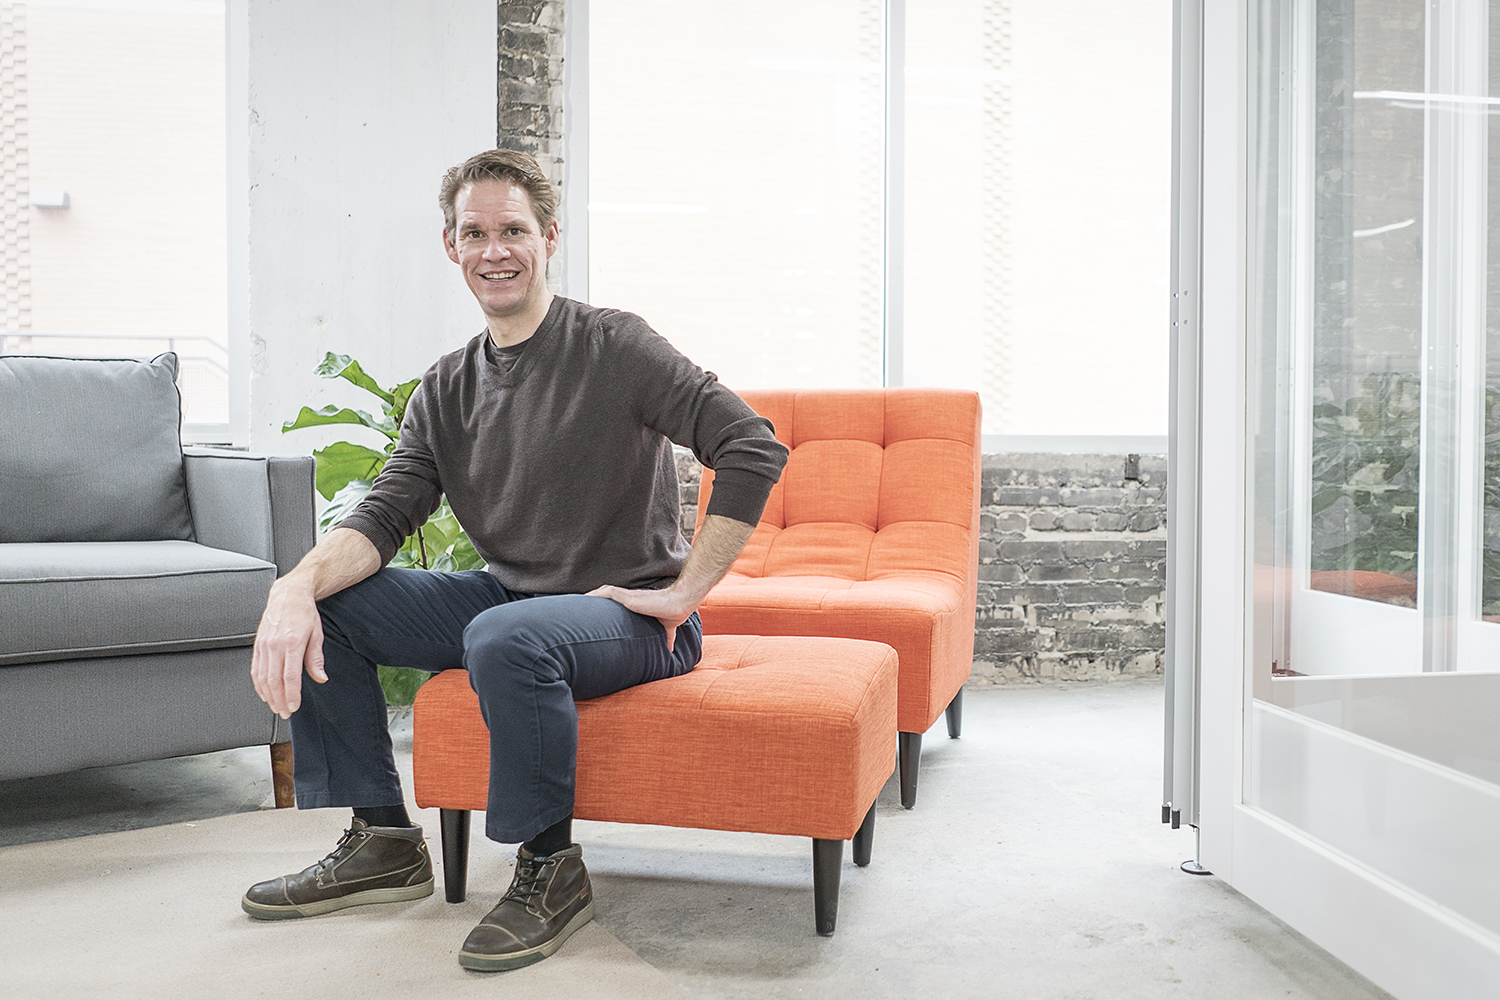 Flint, MI - Friday, December 22, 2017: David Ollila, 47, of Linden, is the President and Chief Innovation Officer for Skypoint Ventures and oversees operations at 100k Ideas.Tim Galloway for FlintSide